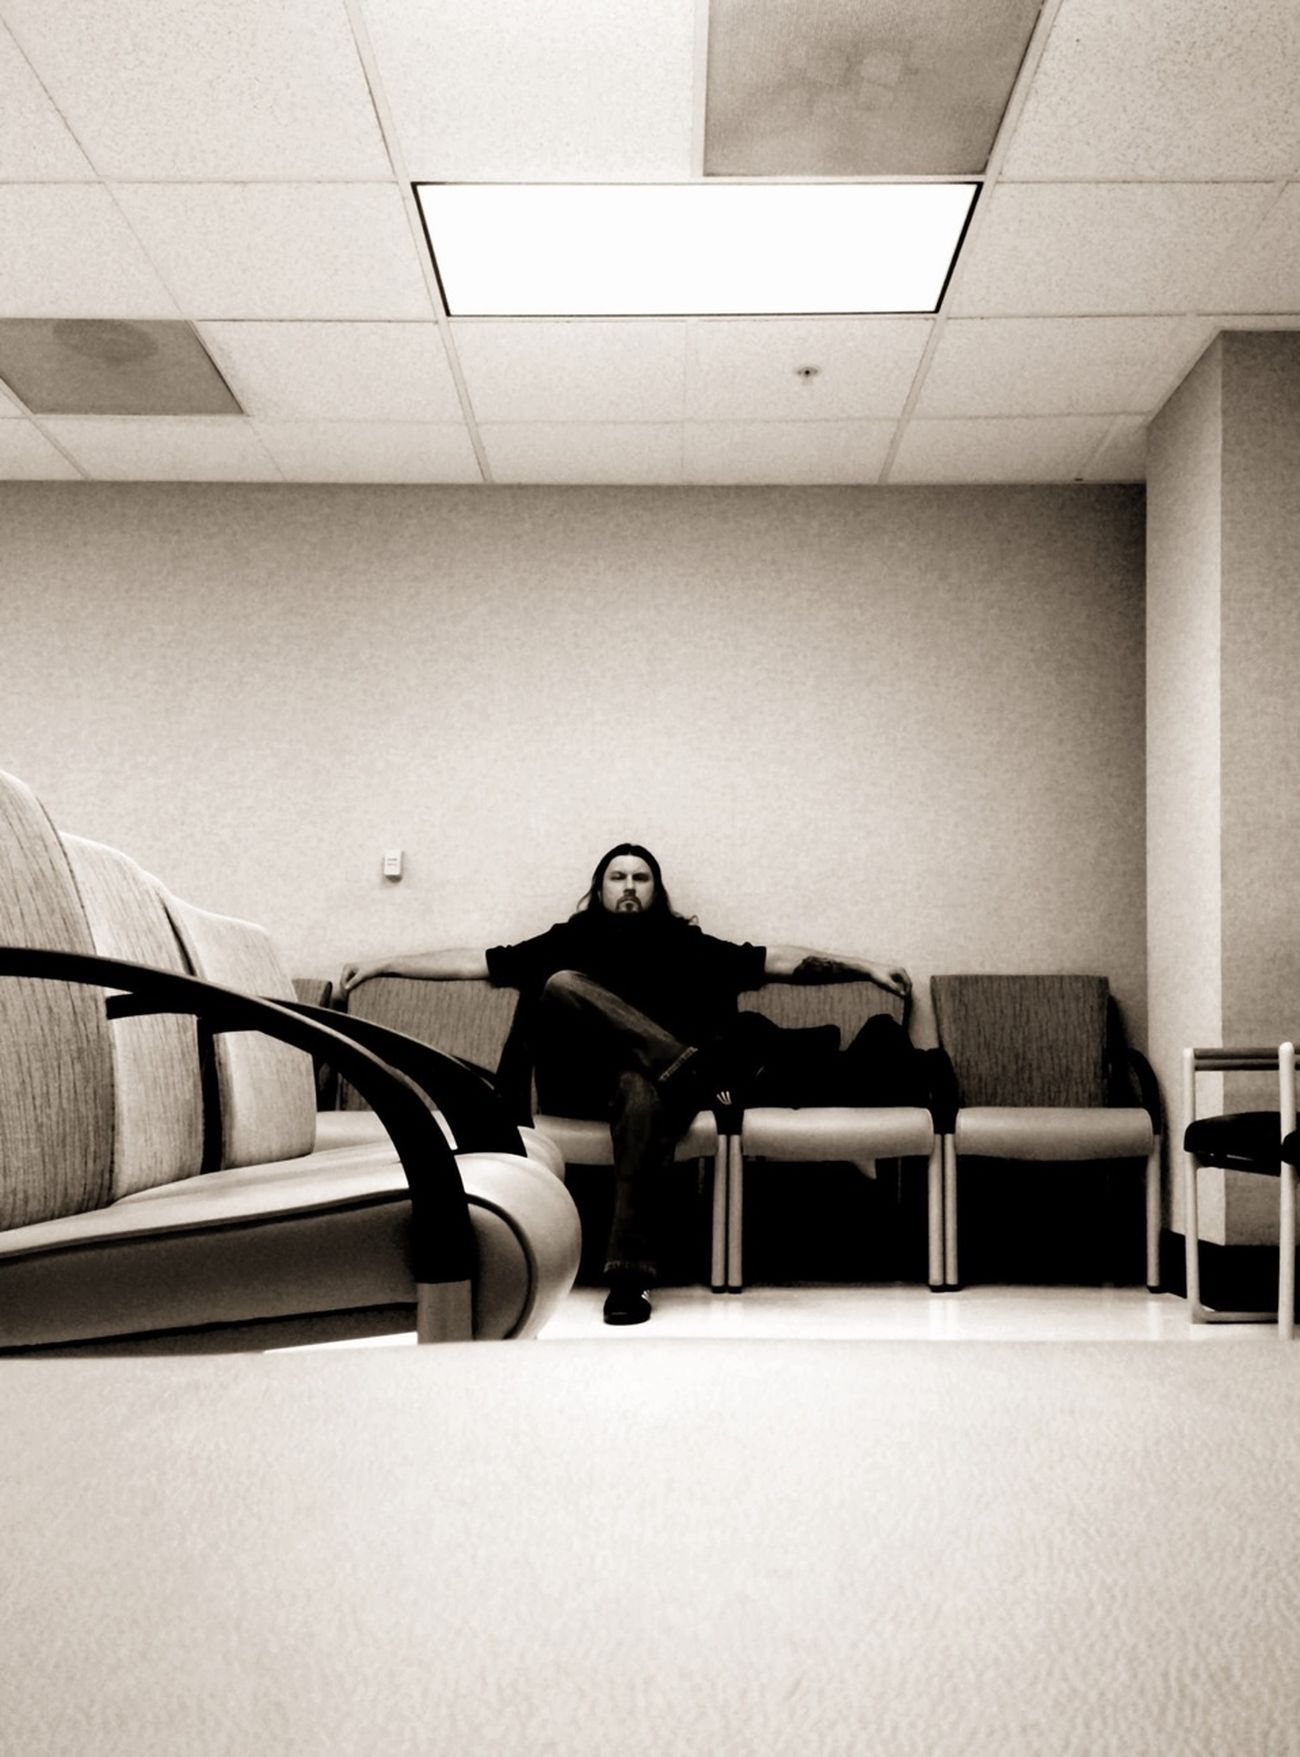 the waiting room. Blackandwhite WeAreJuxt.com AMPt_community